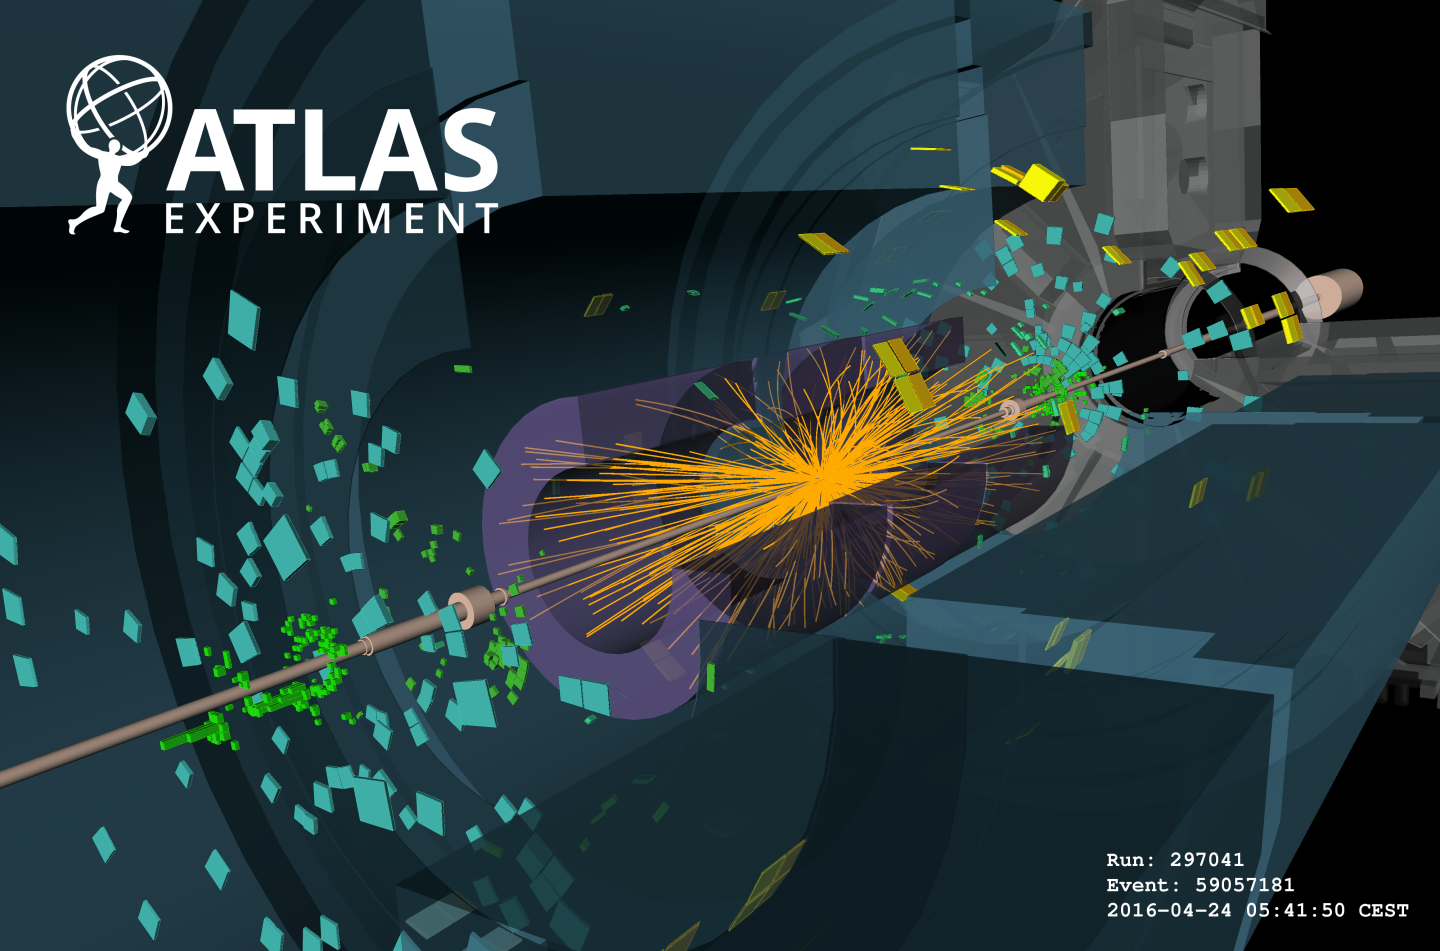 ATLAS,restartLHC,13 TeV,LHC run2